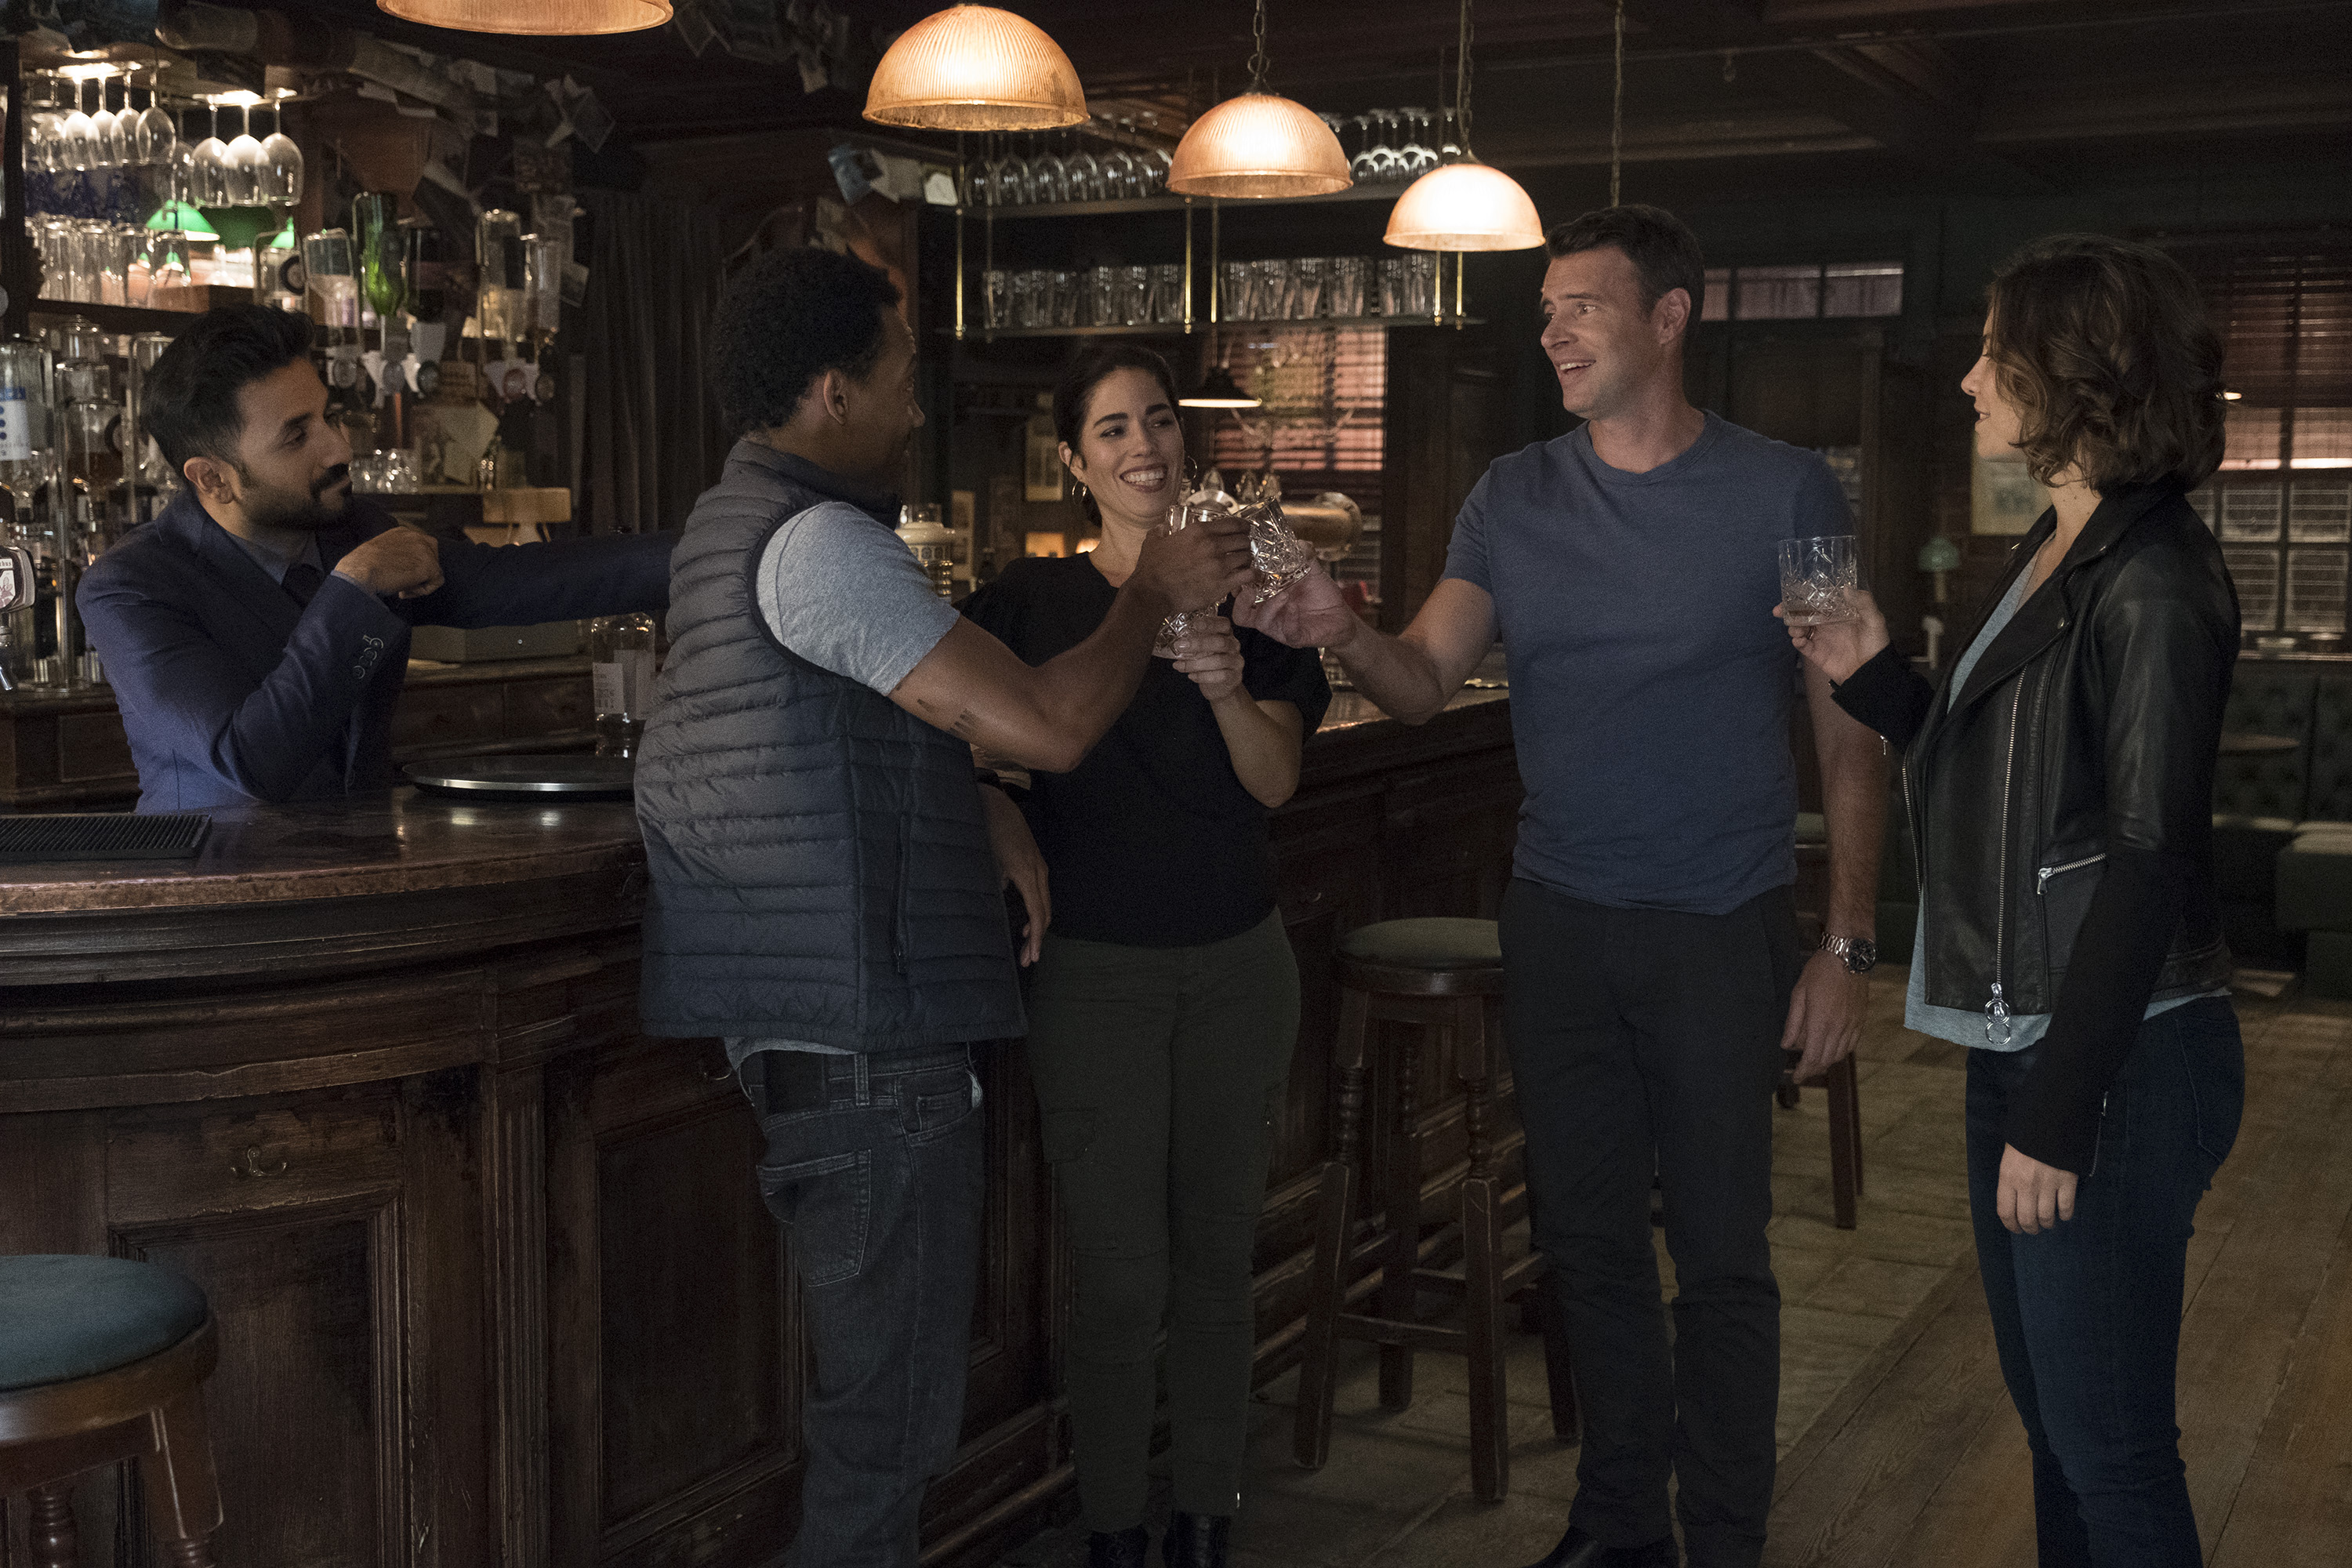 Finally, the interagency team of superagents has come to fruition after completing their first mission together in 'Whiskey Cavalier'. (Source: ABC)